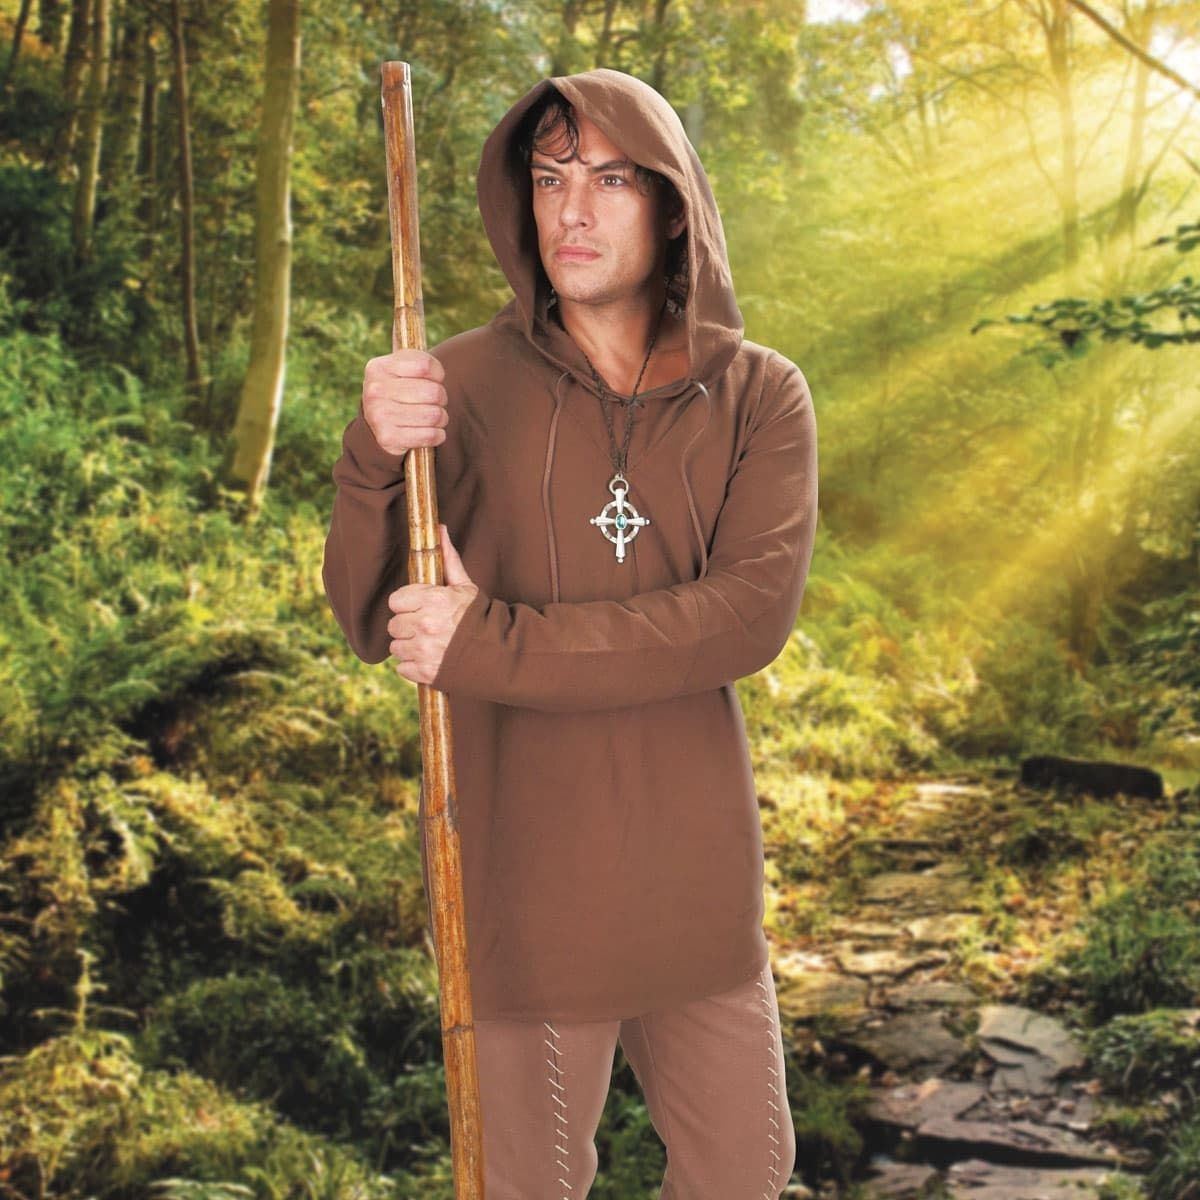 Brown Cotton Bandit Hooded Shirt with hood up